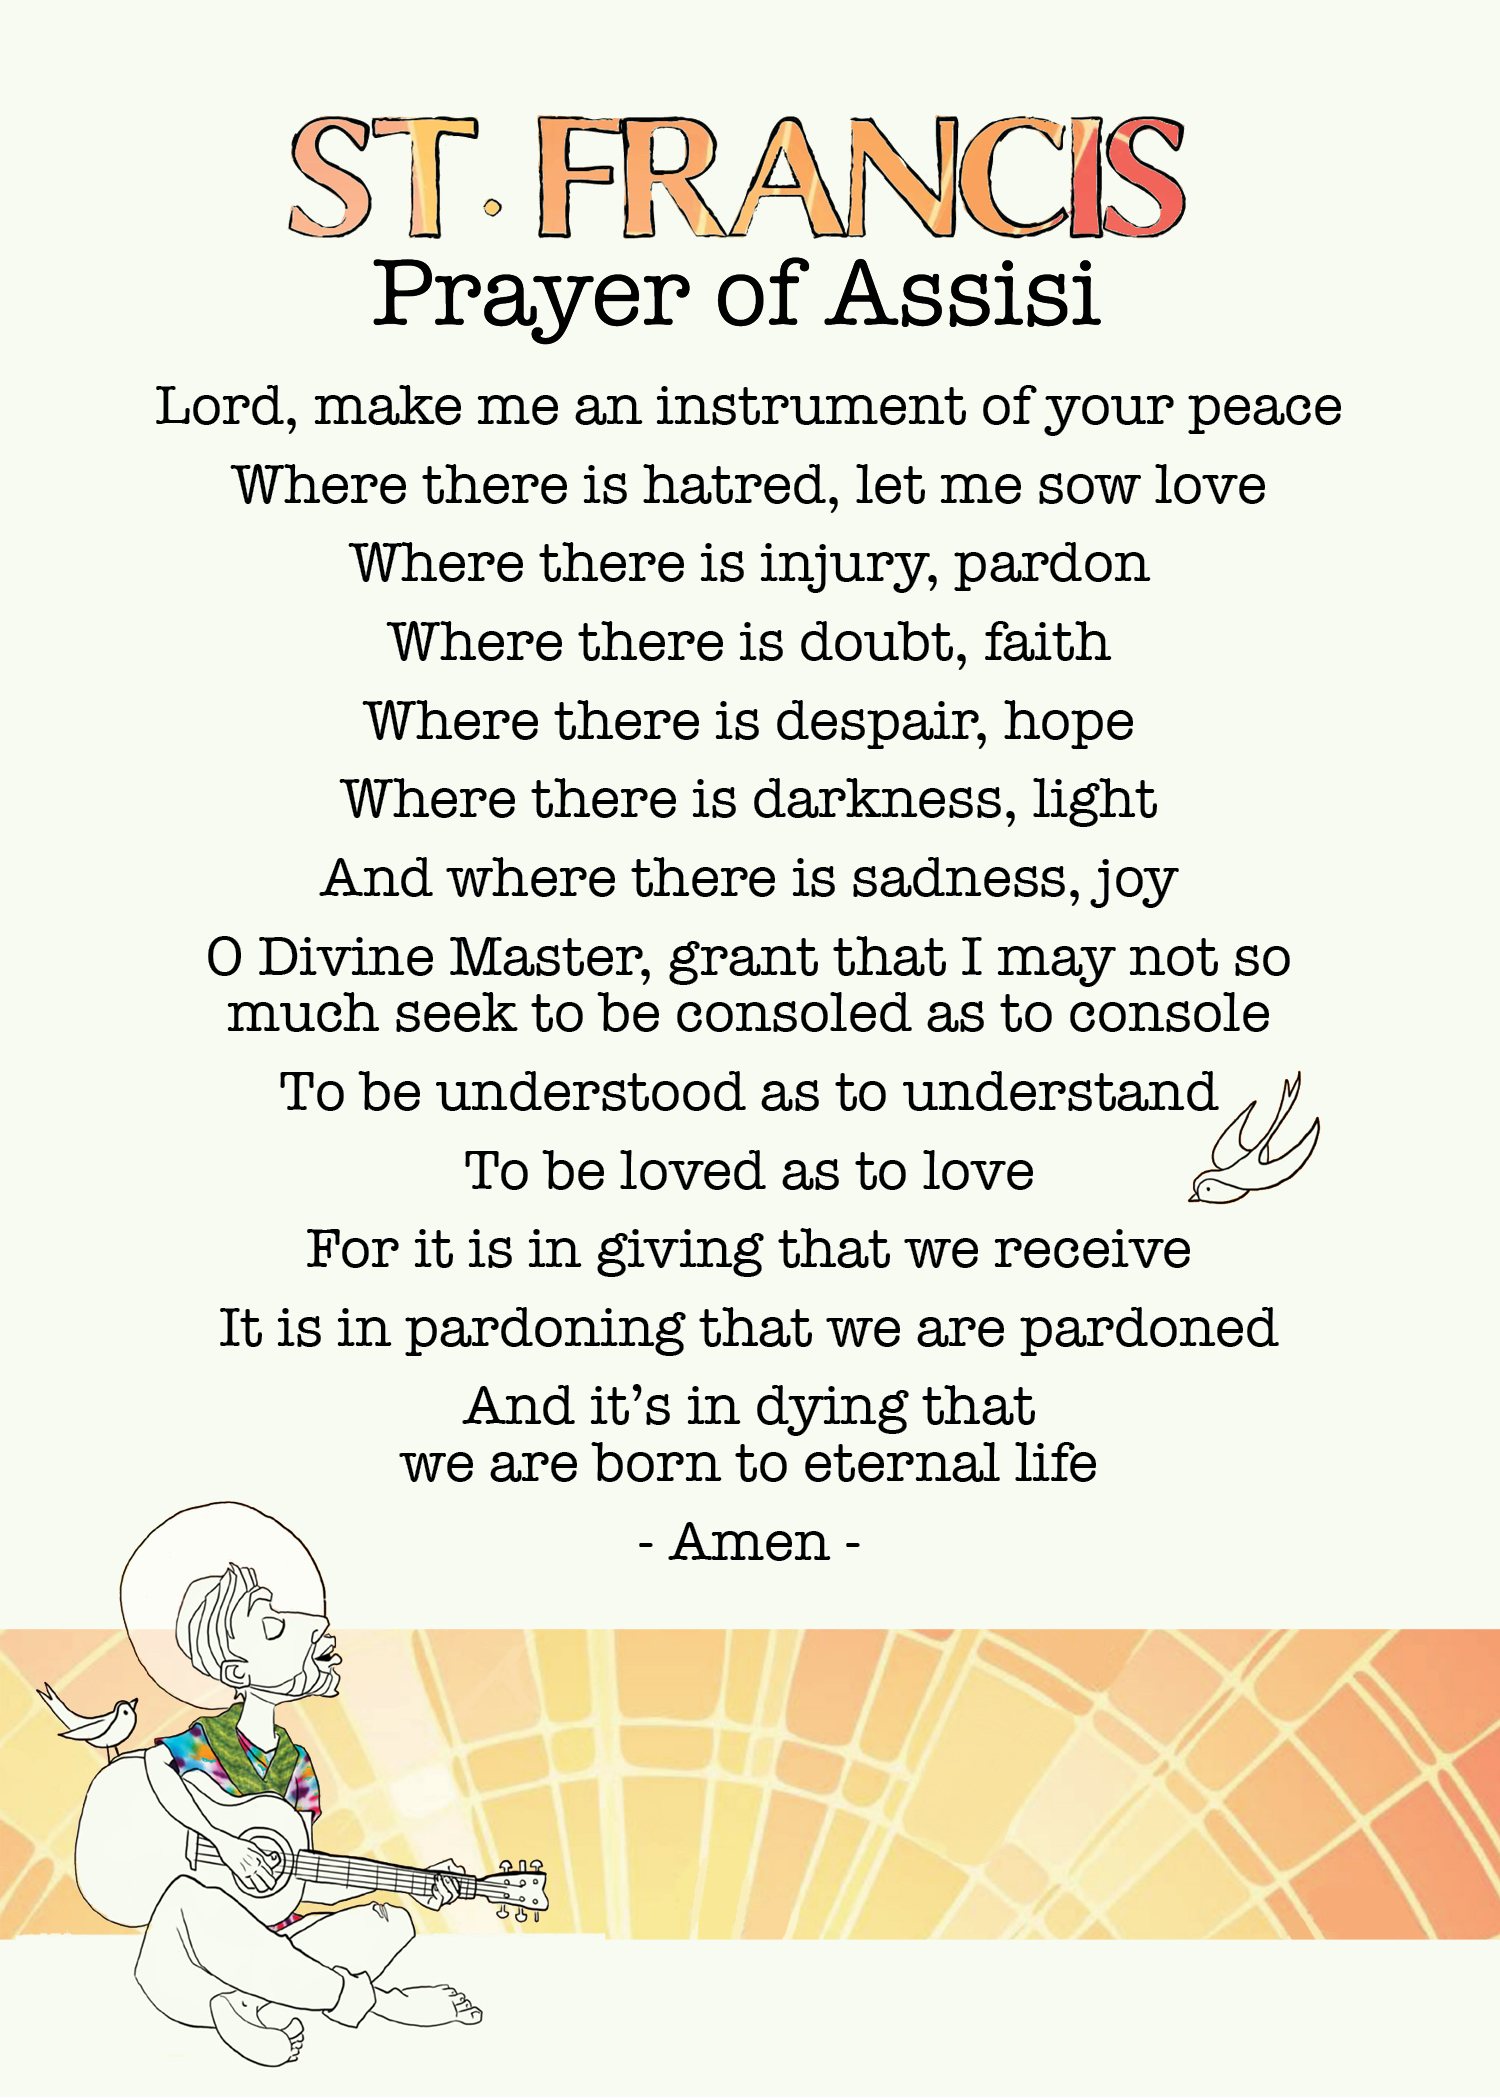 image regarding St Francis Prayer Printable referred to as St. Francis Prayer of Assisi